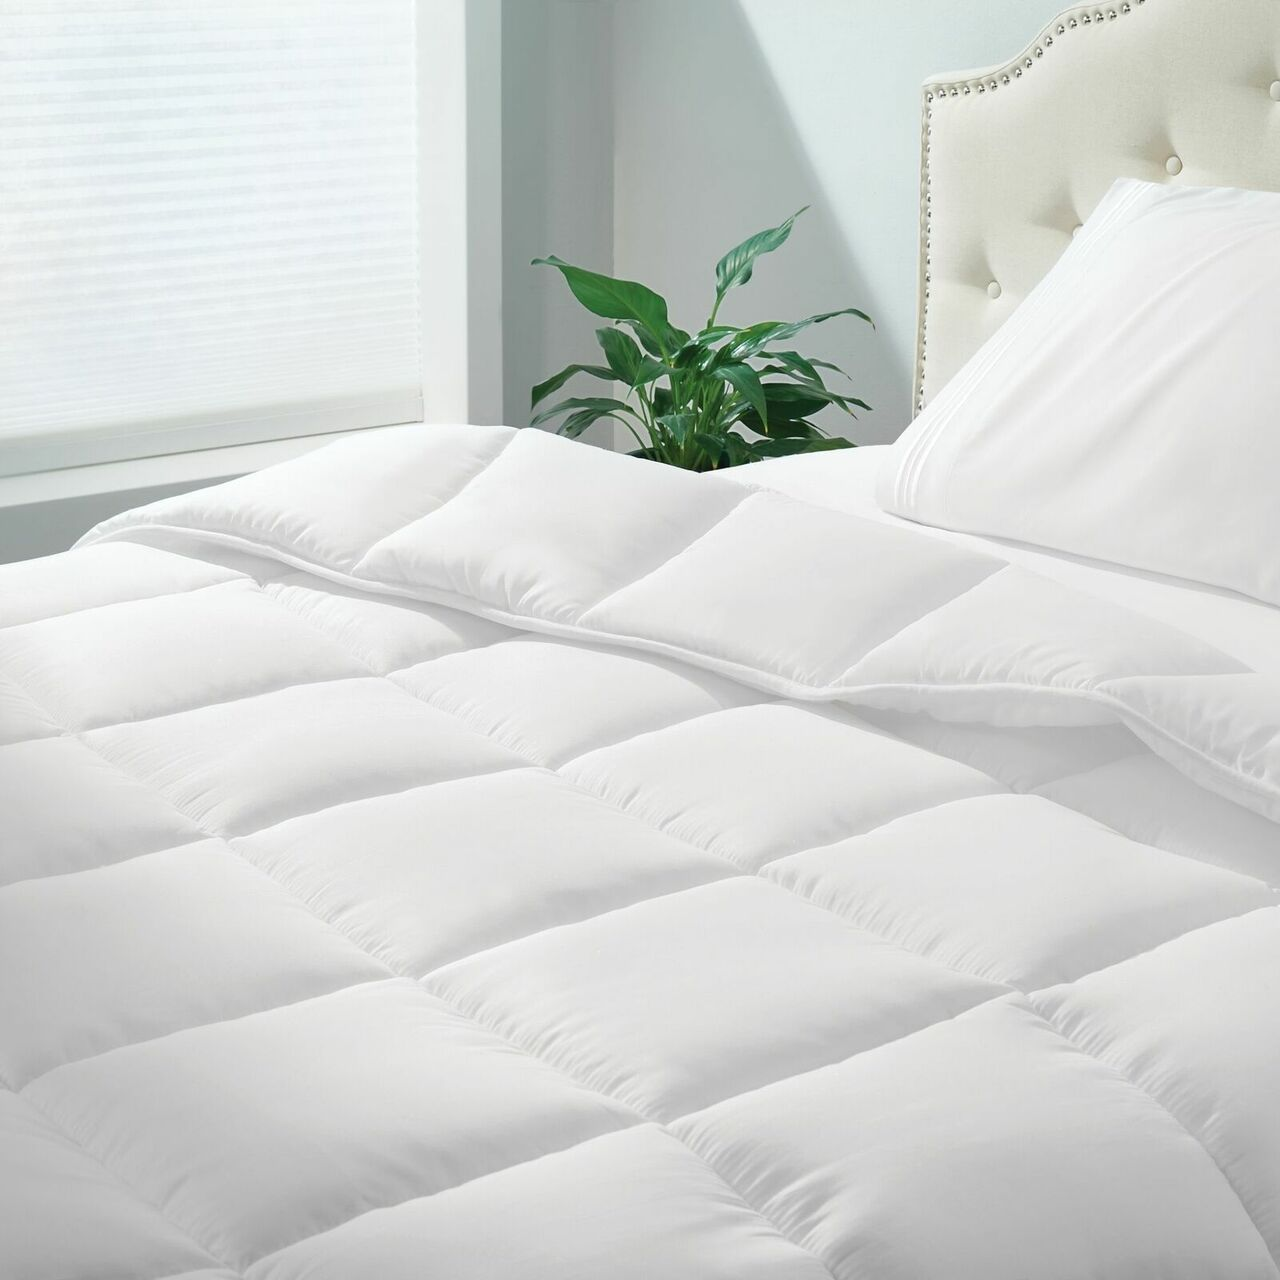 mDesign All-Season Down Alternative Quilted Duvet Insert or Stand-Alone Comforter - Plush Hypoallergenic Microfiber Fill, Box Stitched - Machine Washable BOX STITCHING: Our soft and plush duvet insert features lofty baffle box construction and a strong an